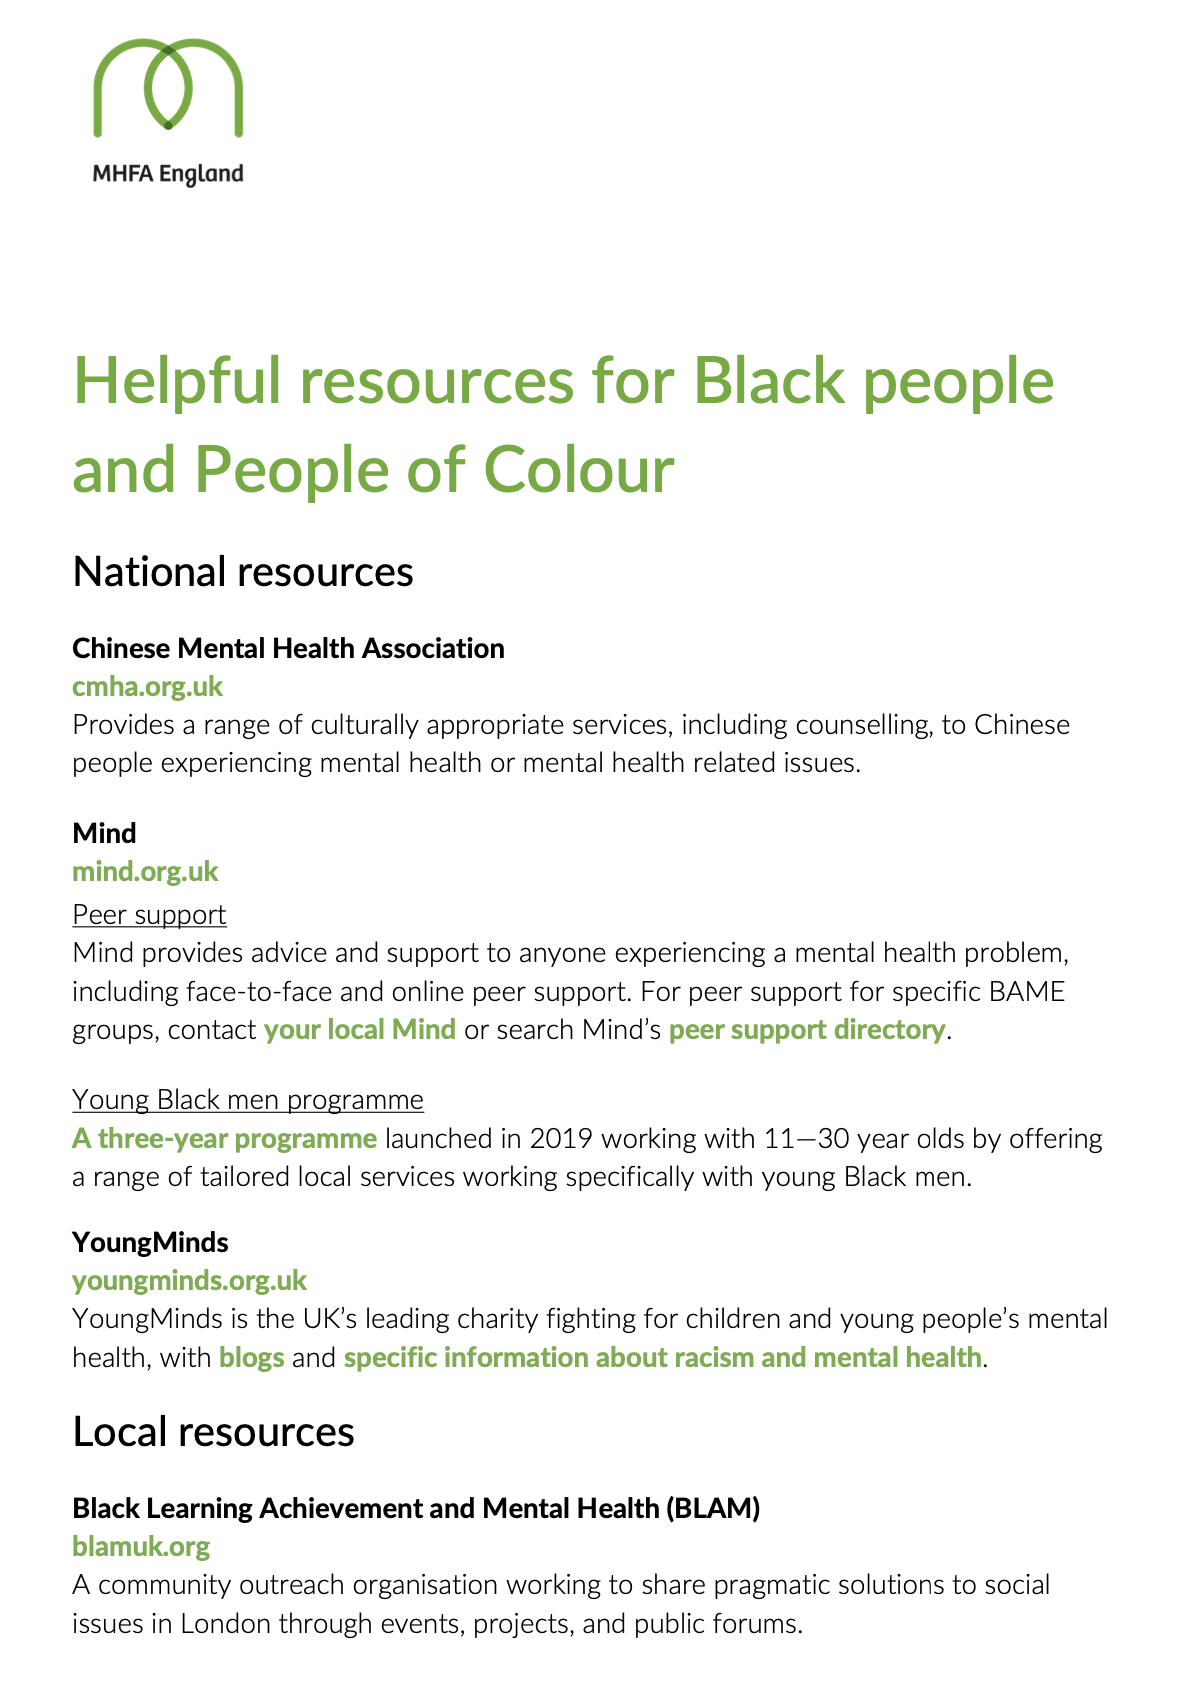 Helpful resources for Black people and People of Colour